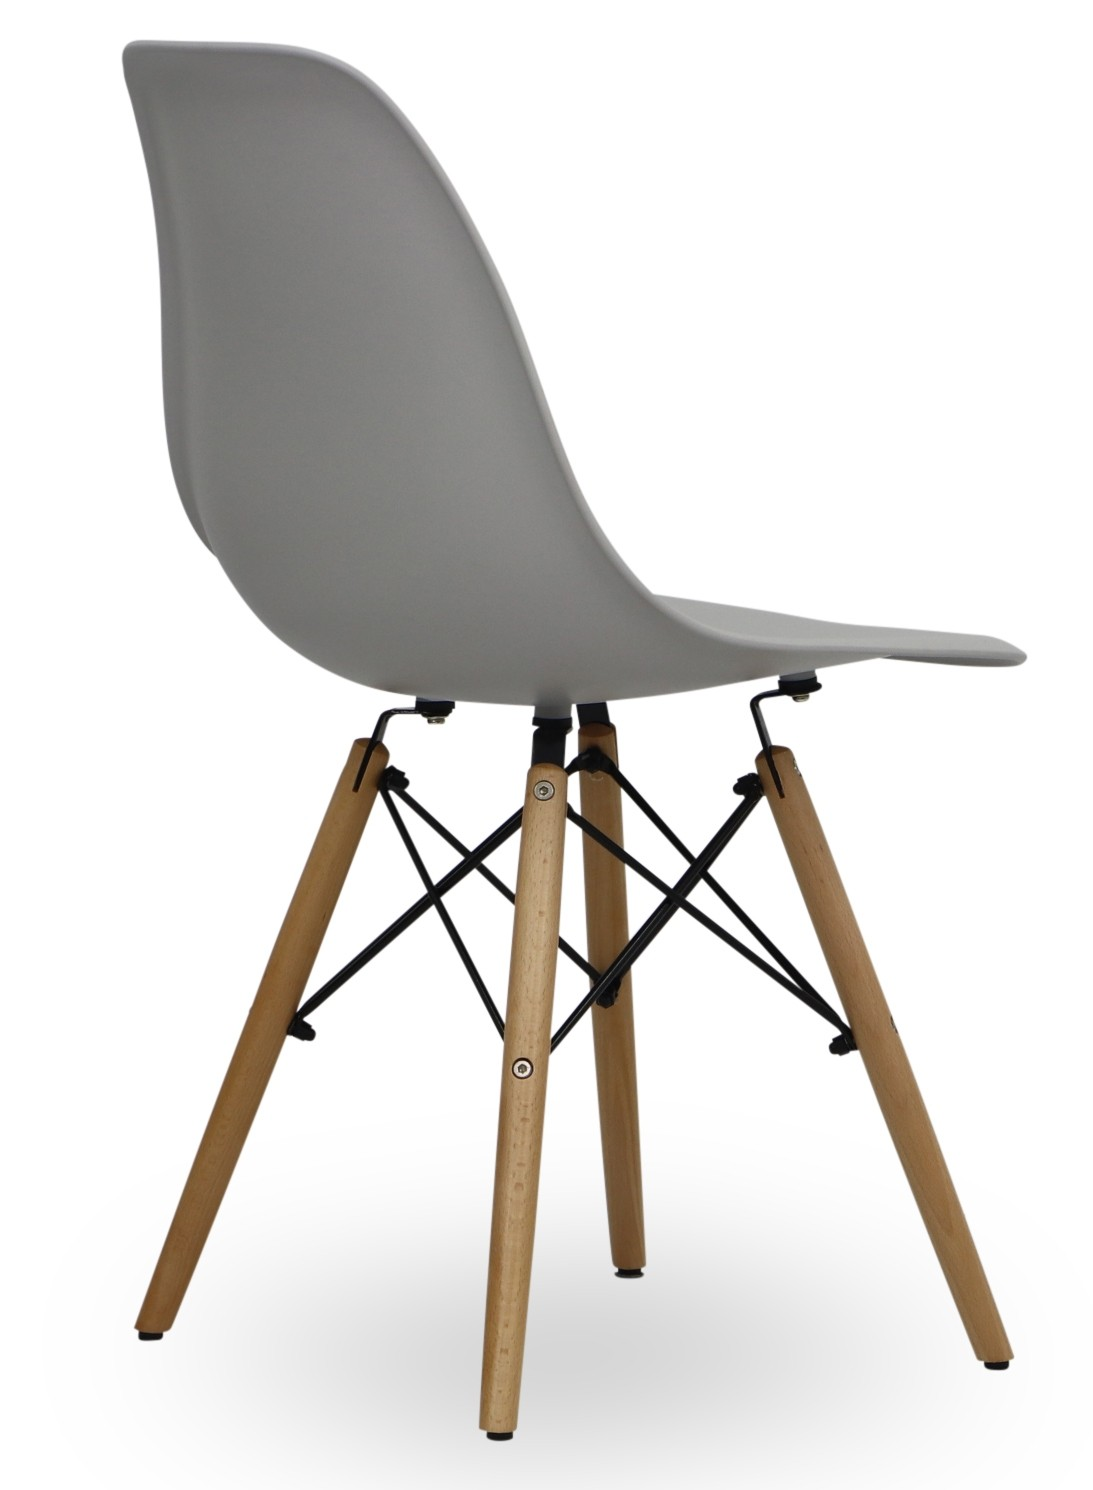 Eames light grey replica designer chair chairs seating for Imitation designer chairs